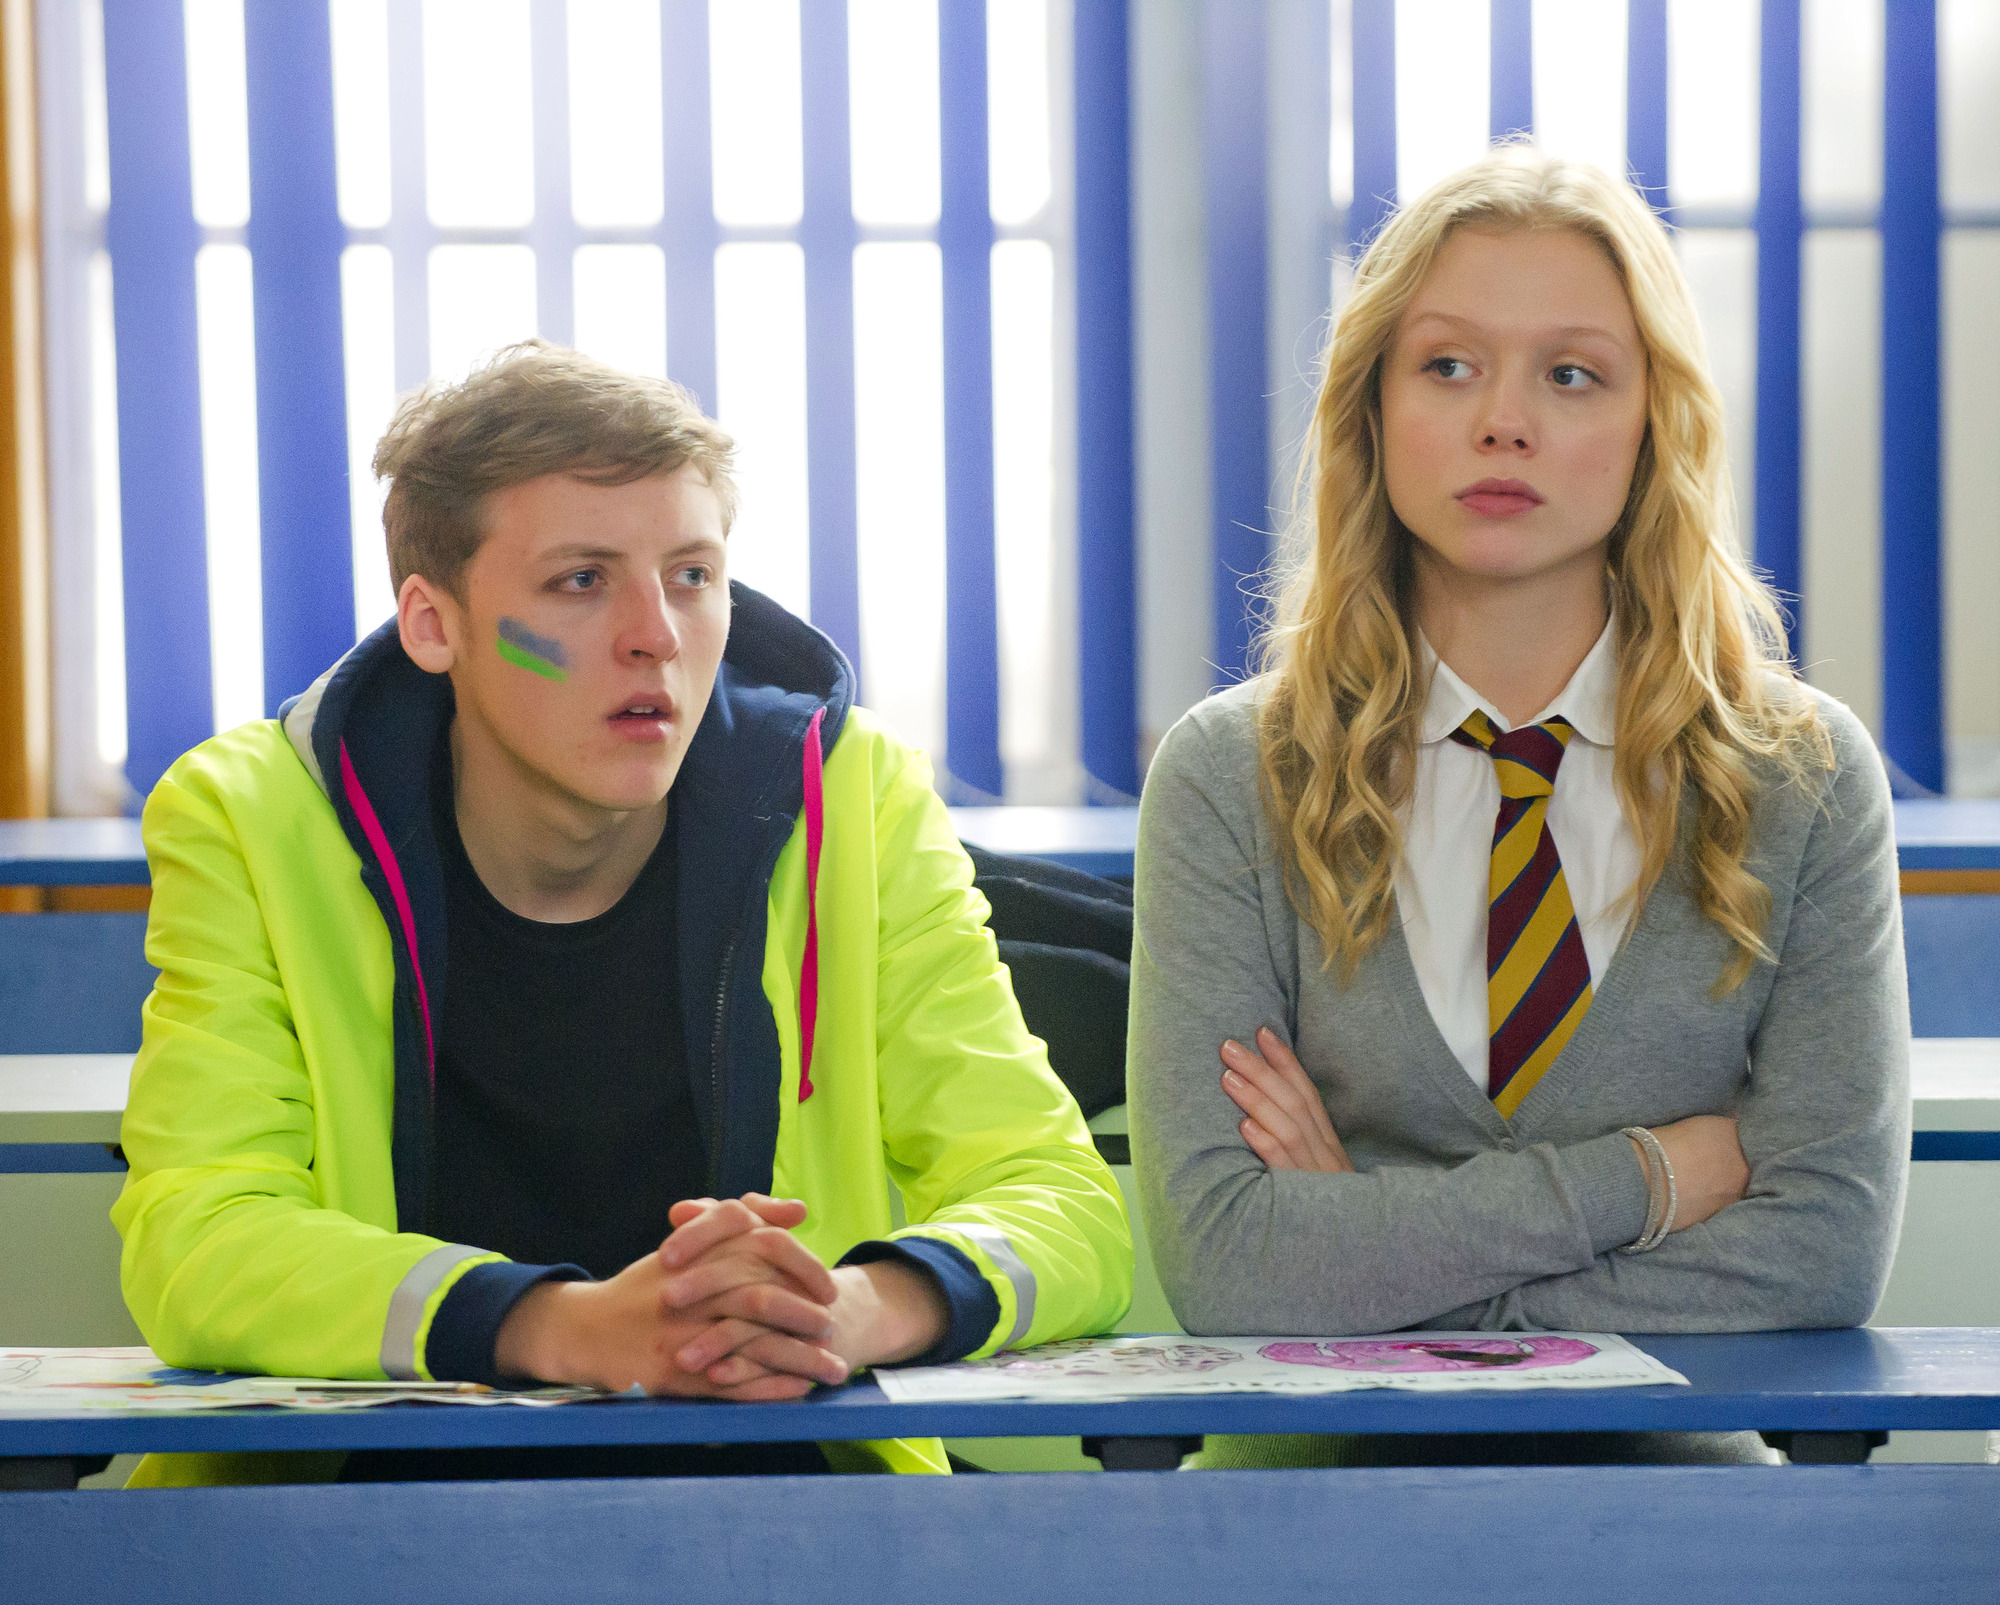 Waterloo Road final series continues: 8 teasers from episode 8